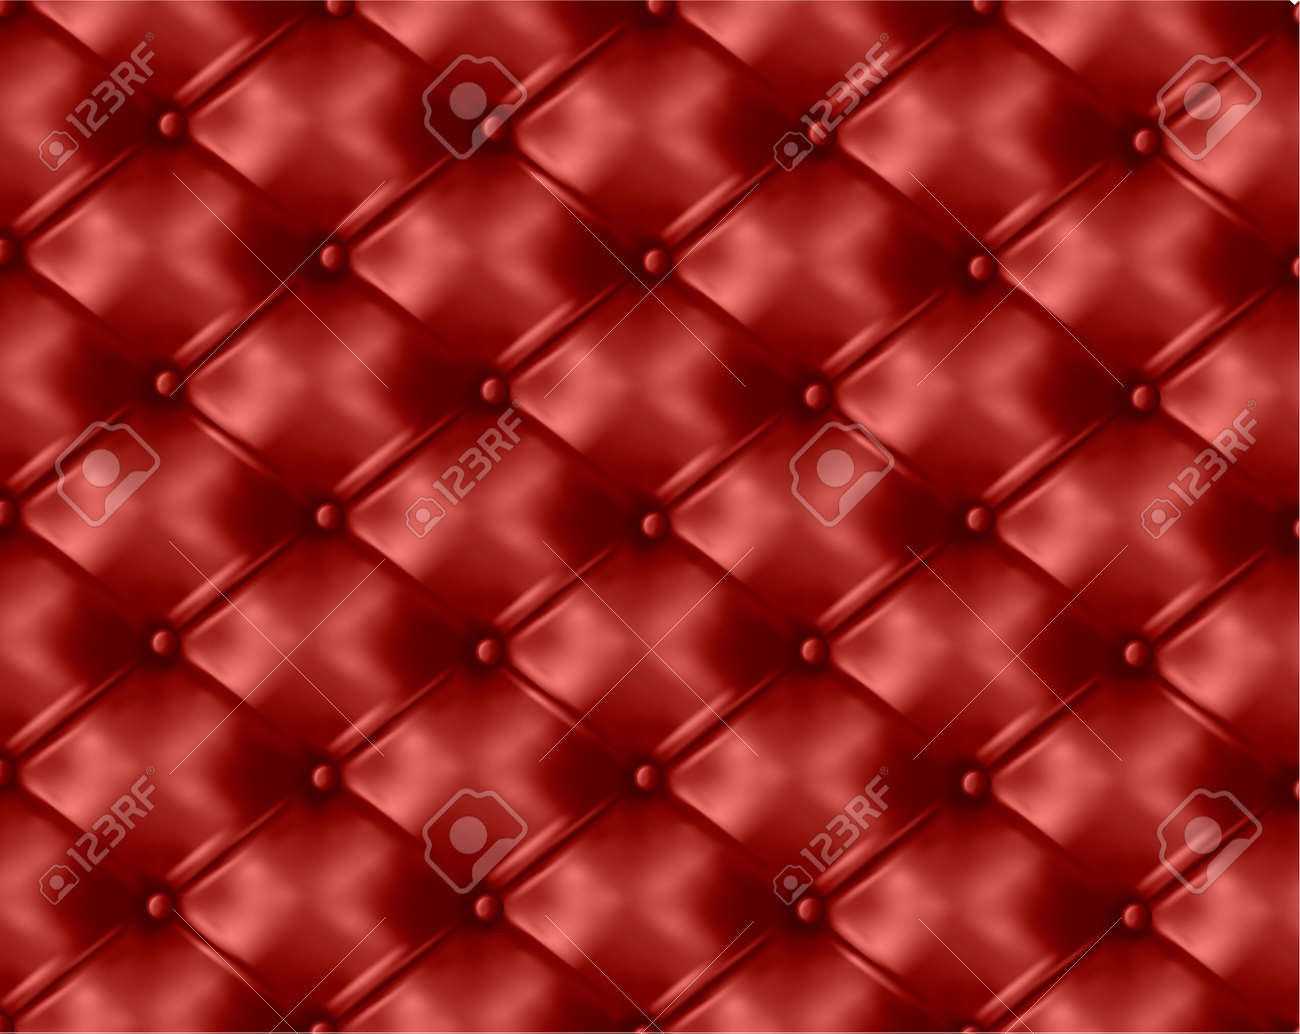 Red button-tufted leather background. Vector illustration. Stock Vector - 10945845